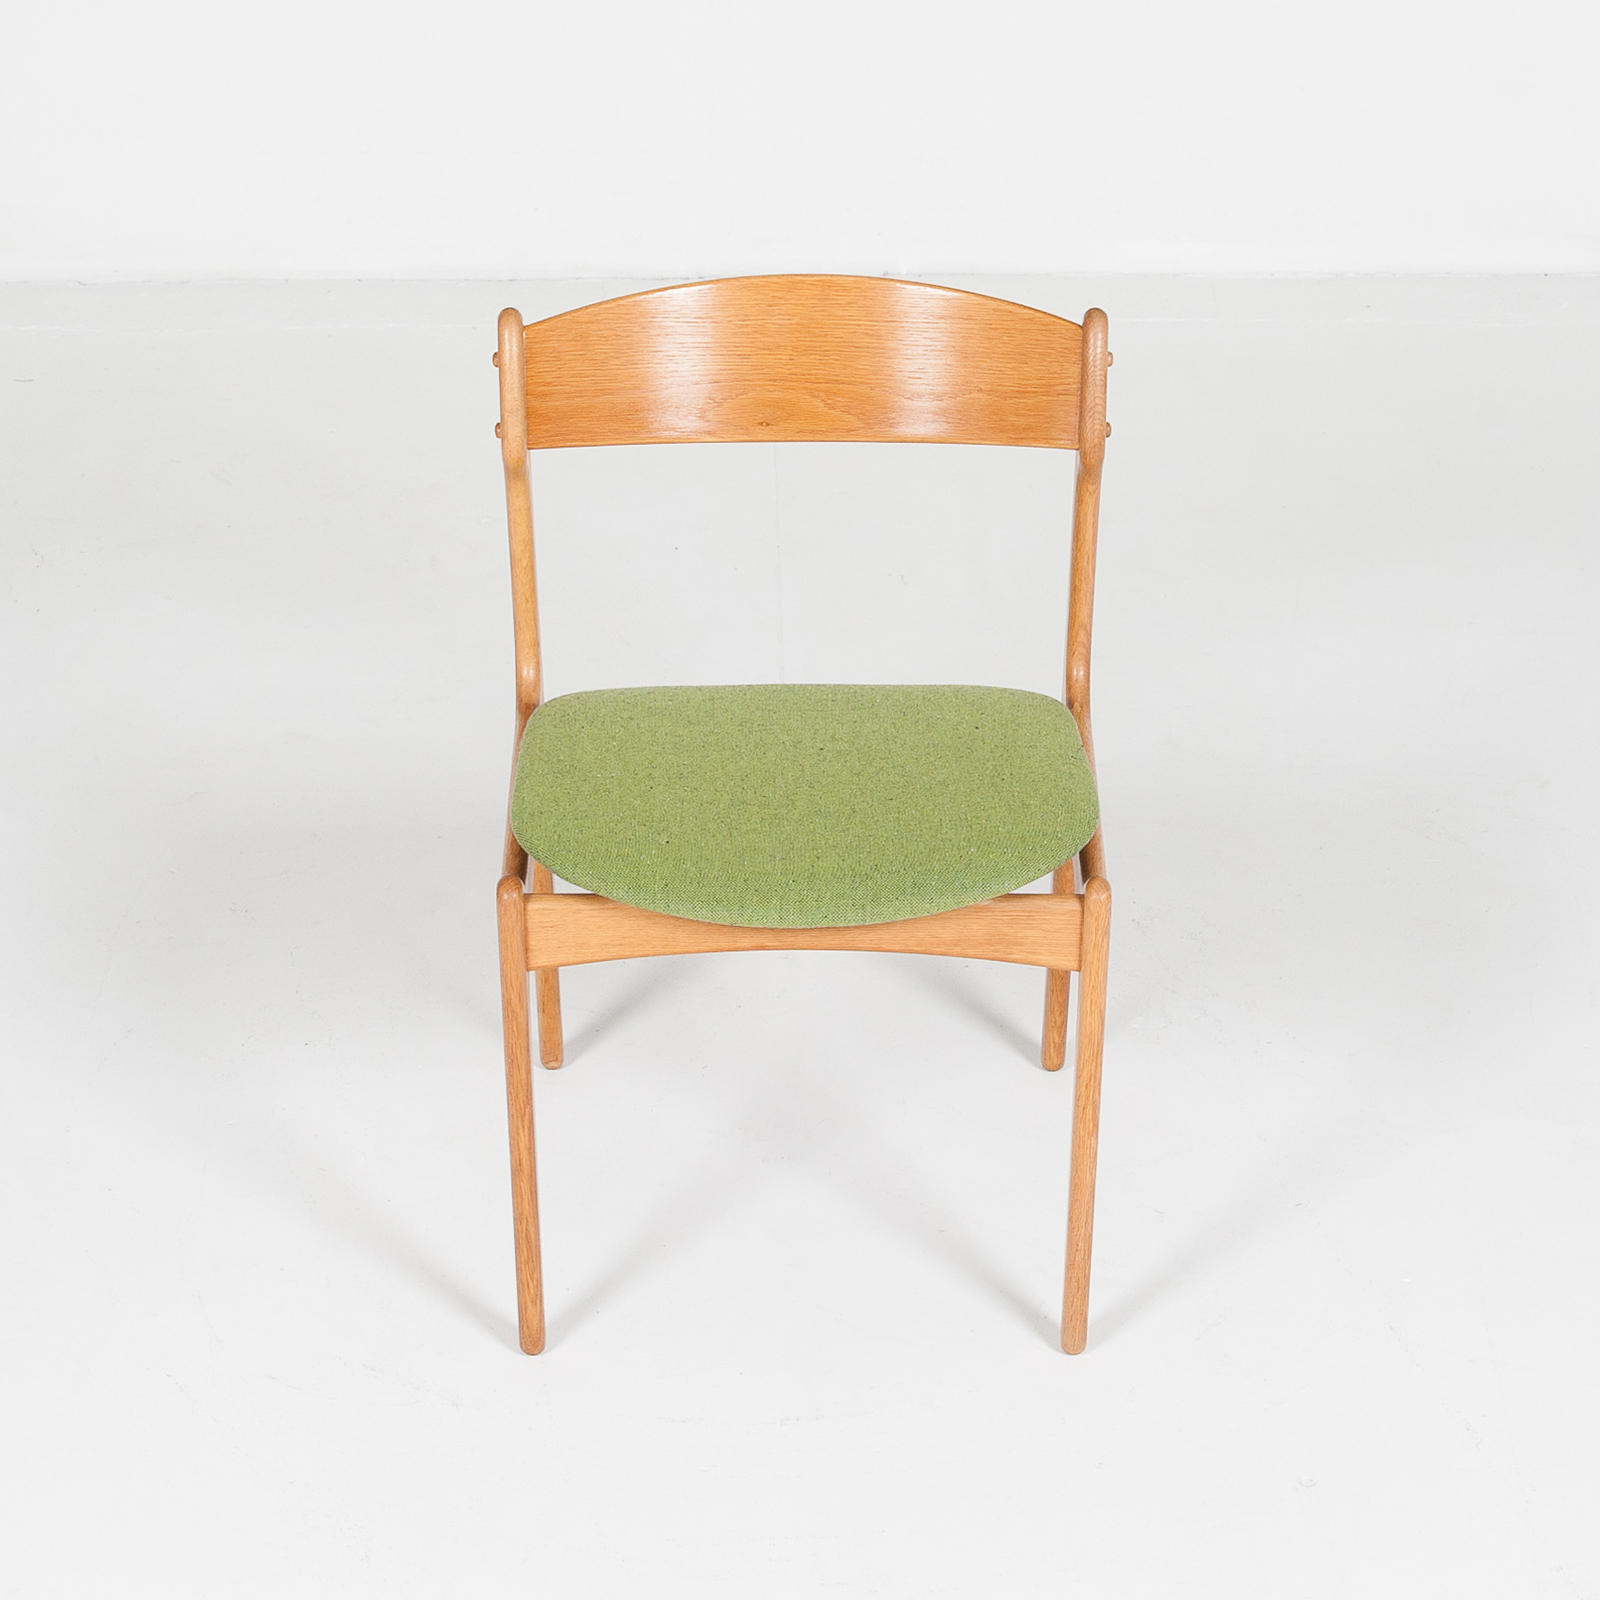 Set Of Four Dining Chairs By Erik Buch For O.d. Mobler In Oak And Green Upholstery, 1960s, Denmark78